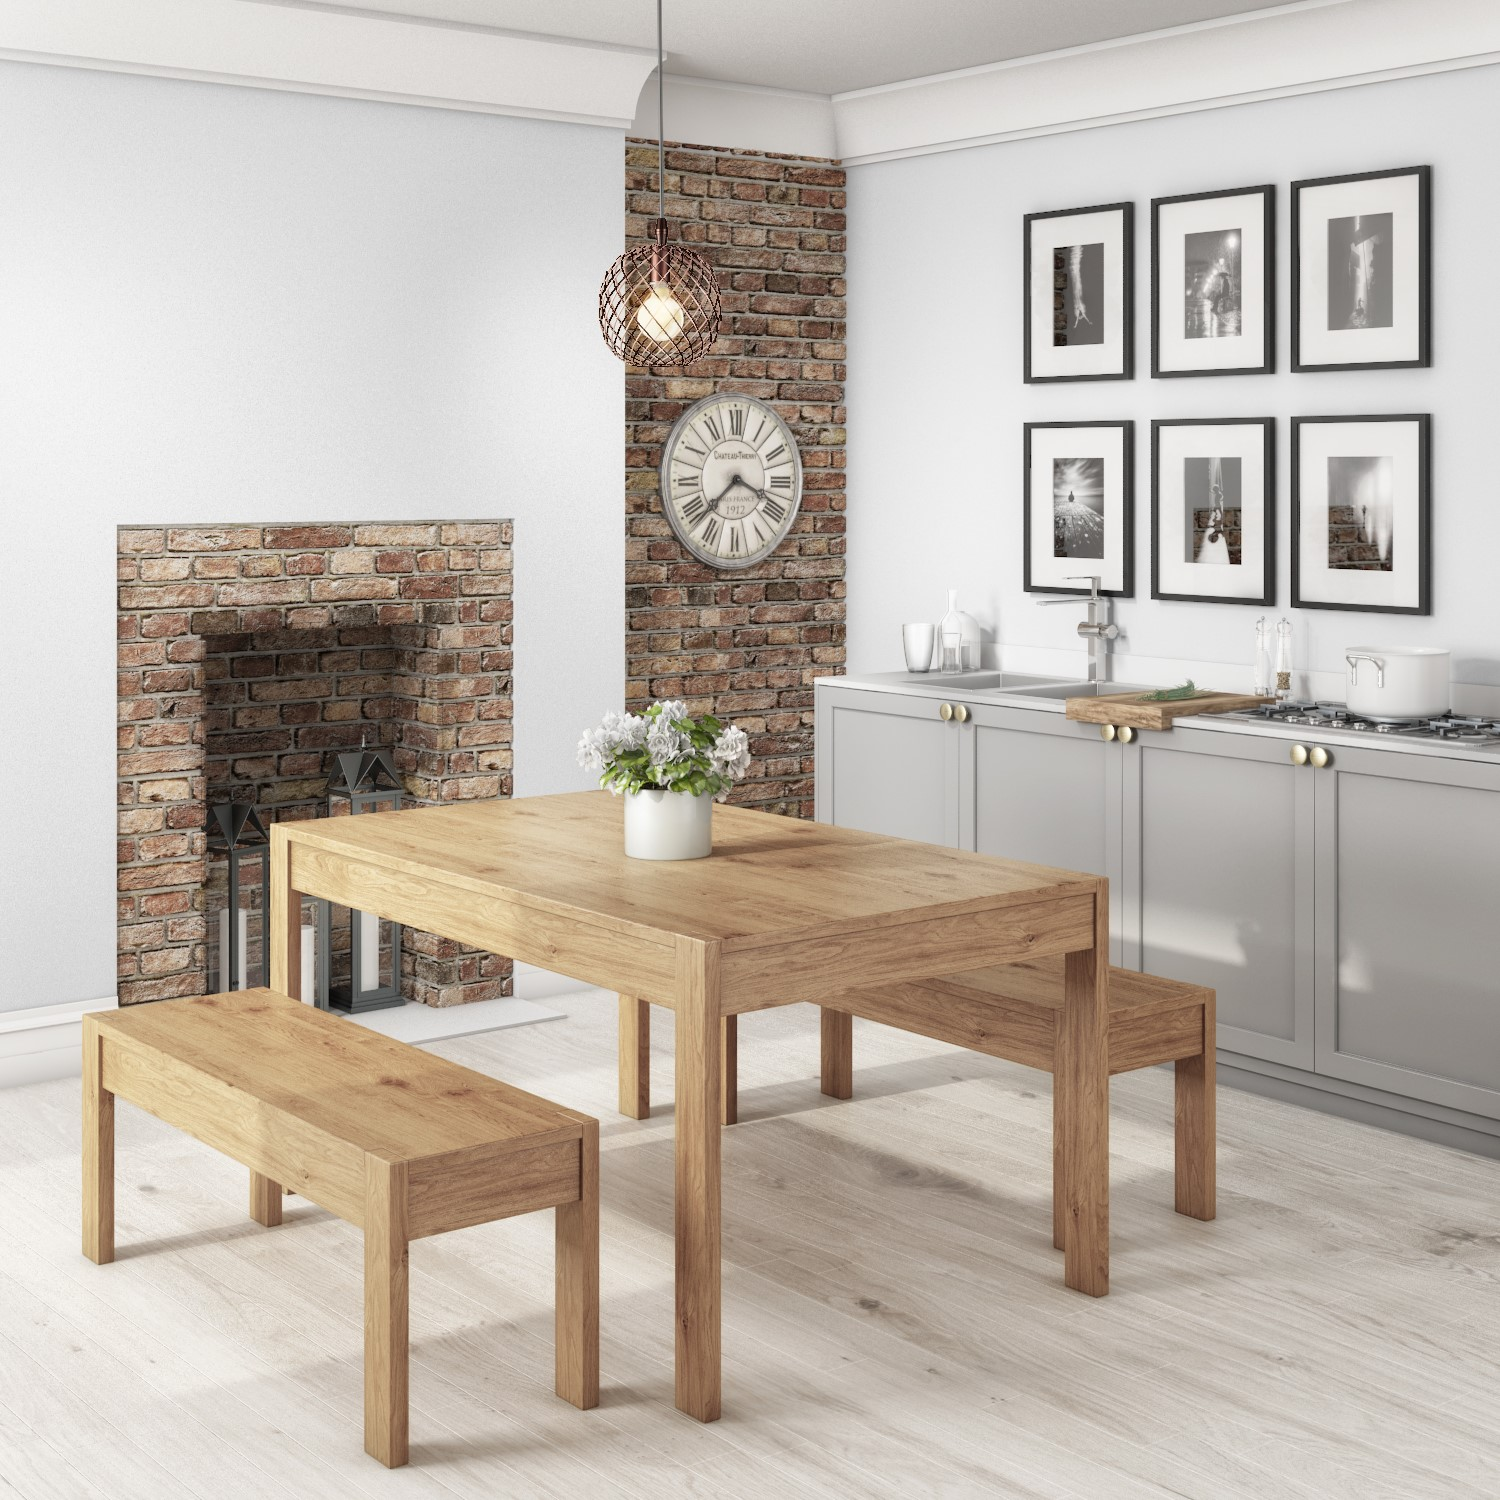 Solid Pine Rectangle Dining Table With, Dining Room Bench